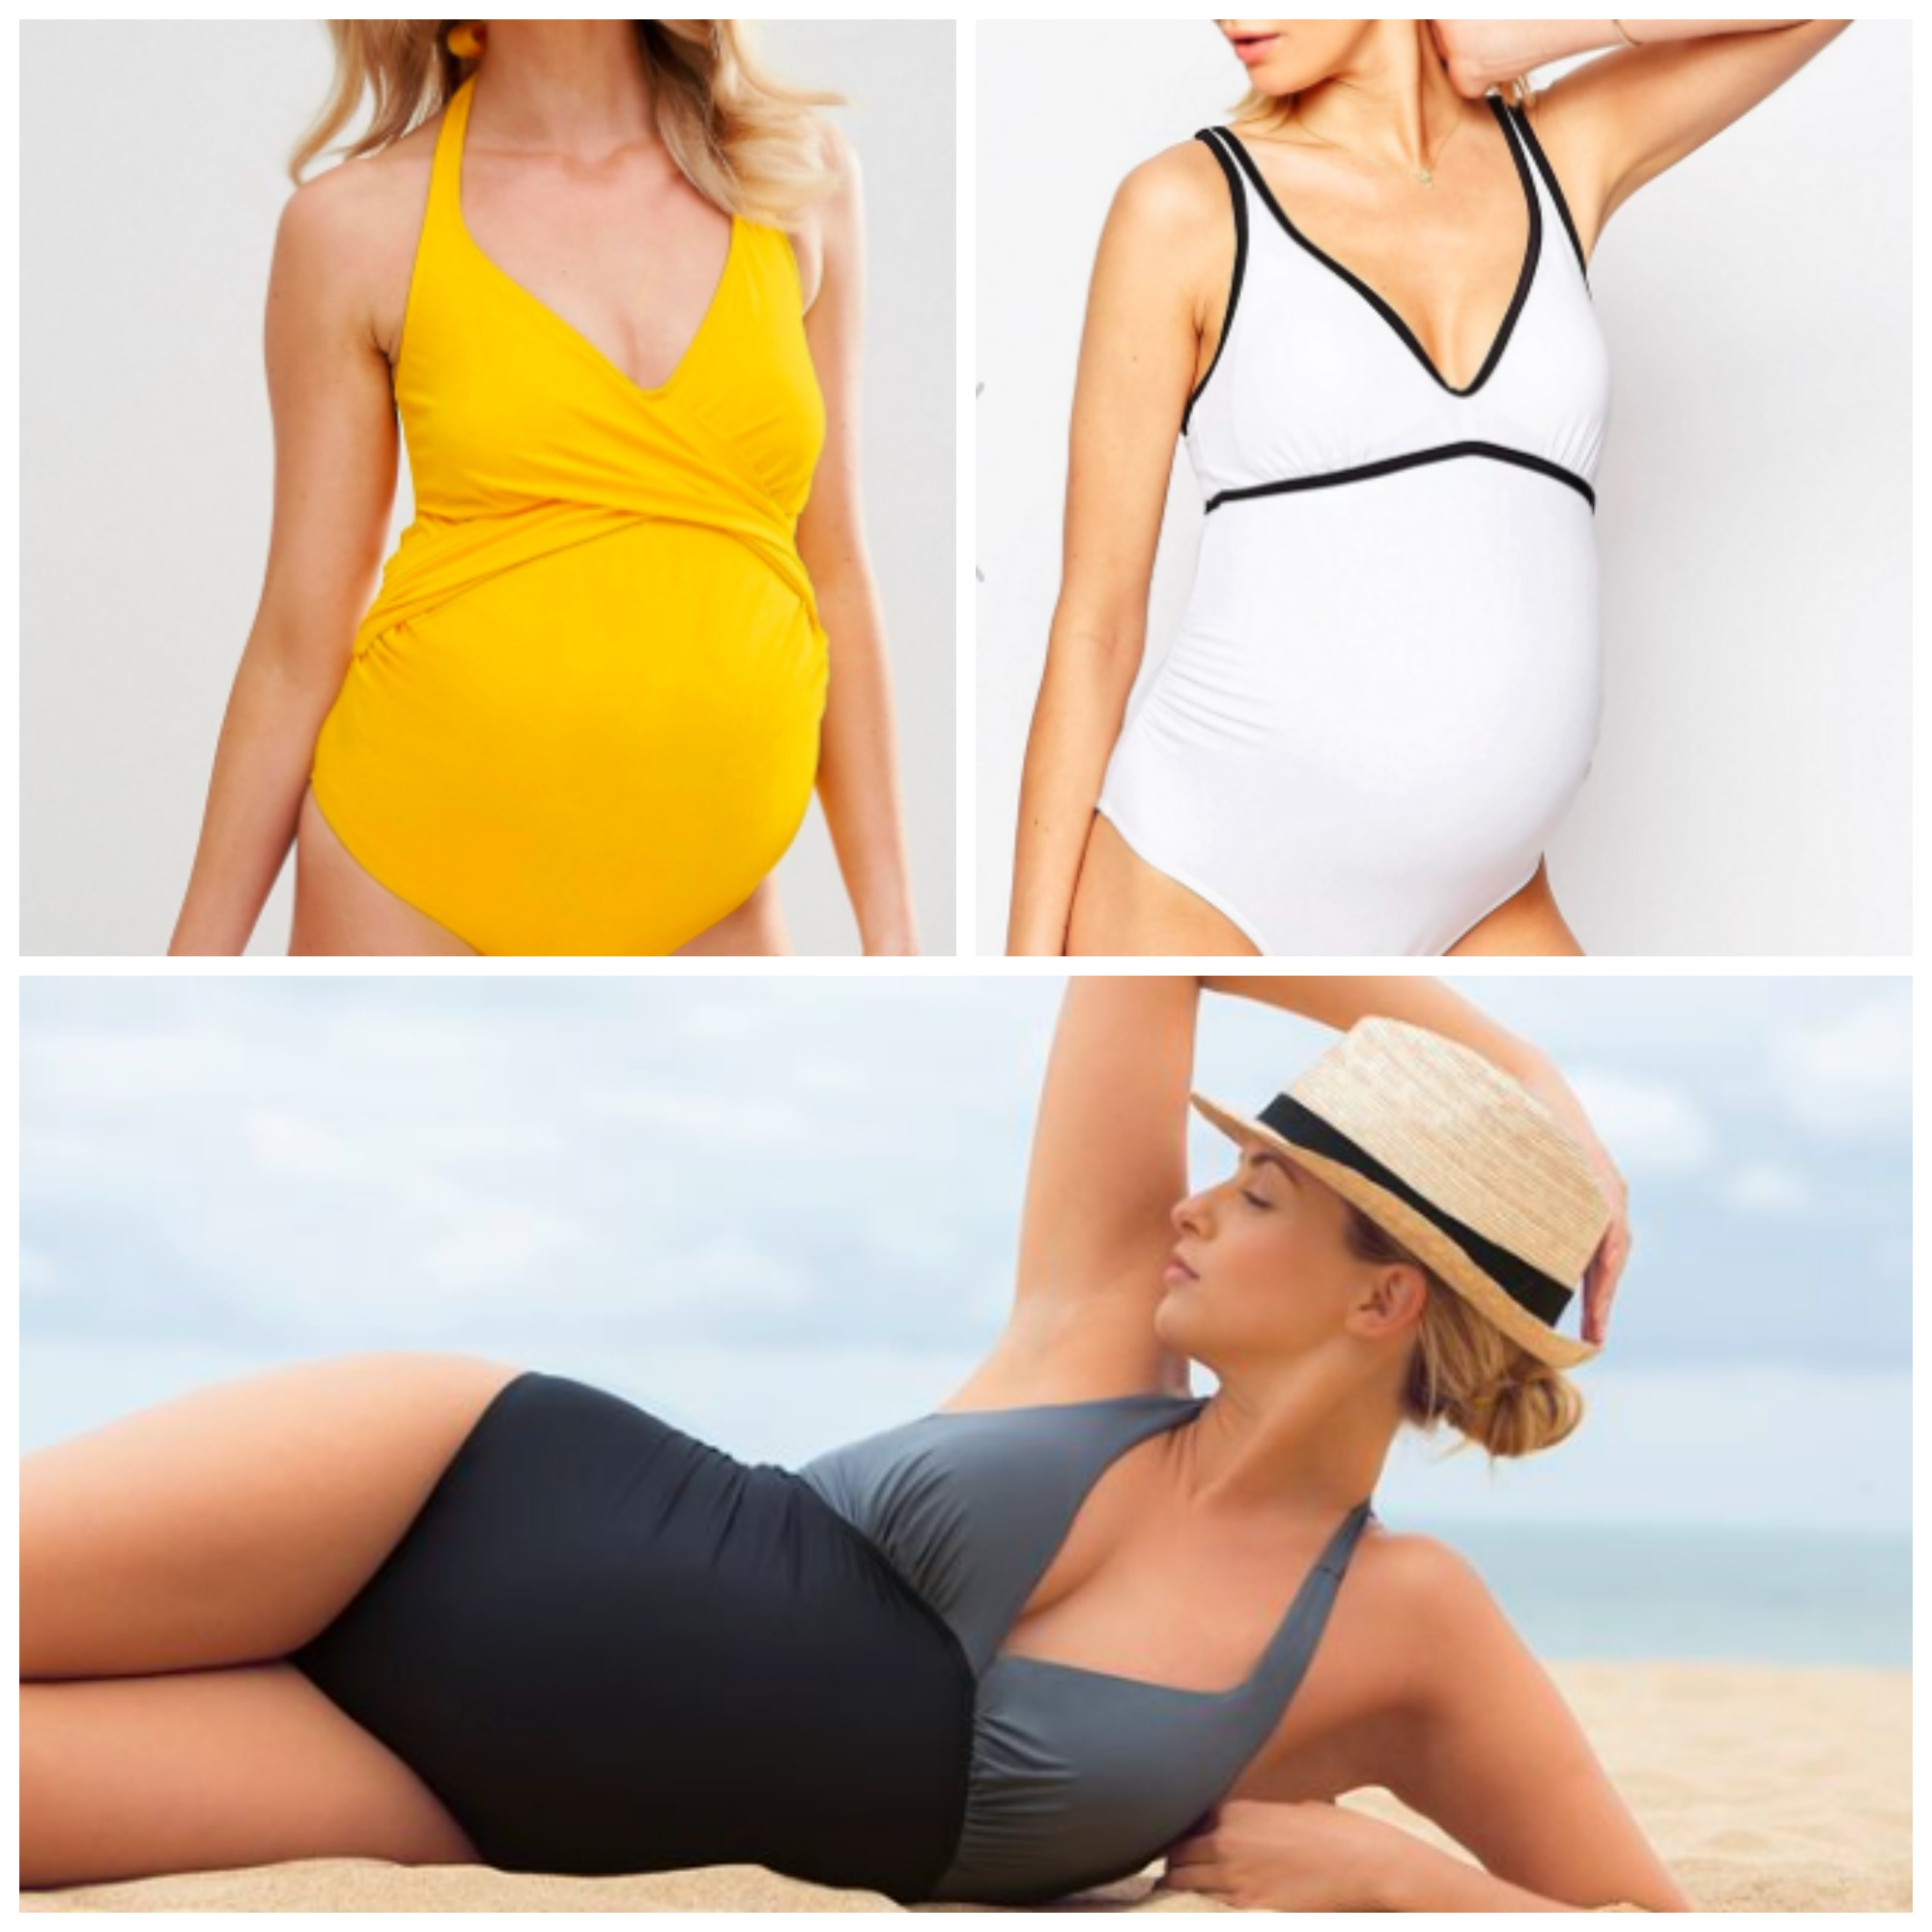 Maternity One Piece Bathing Suit | Maternity Swimsuit | Bathing Suit Pregnancy